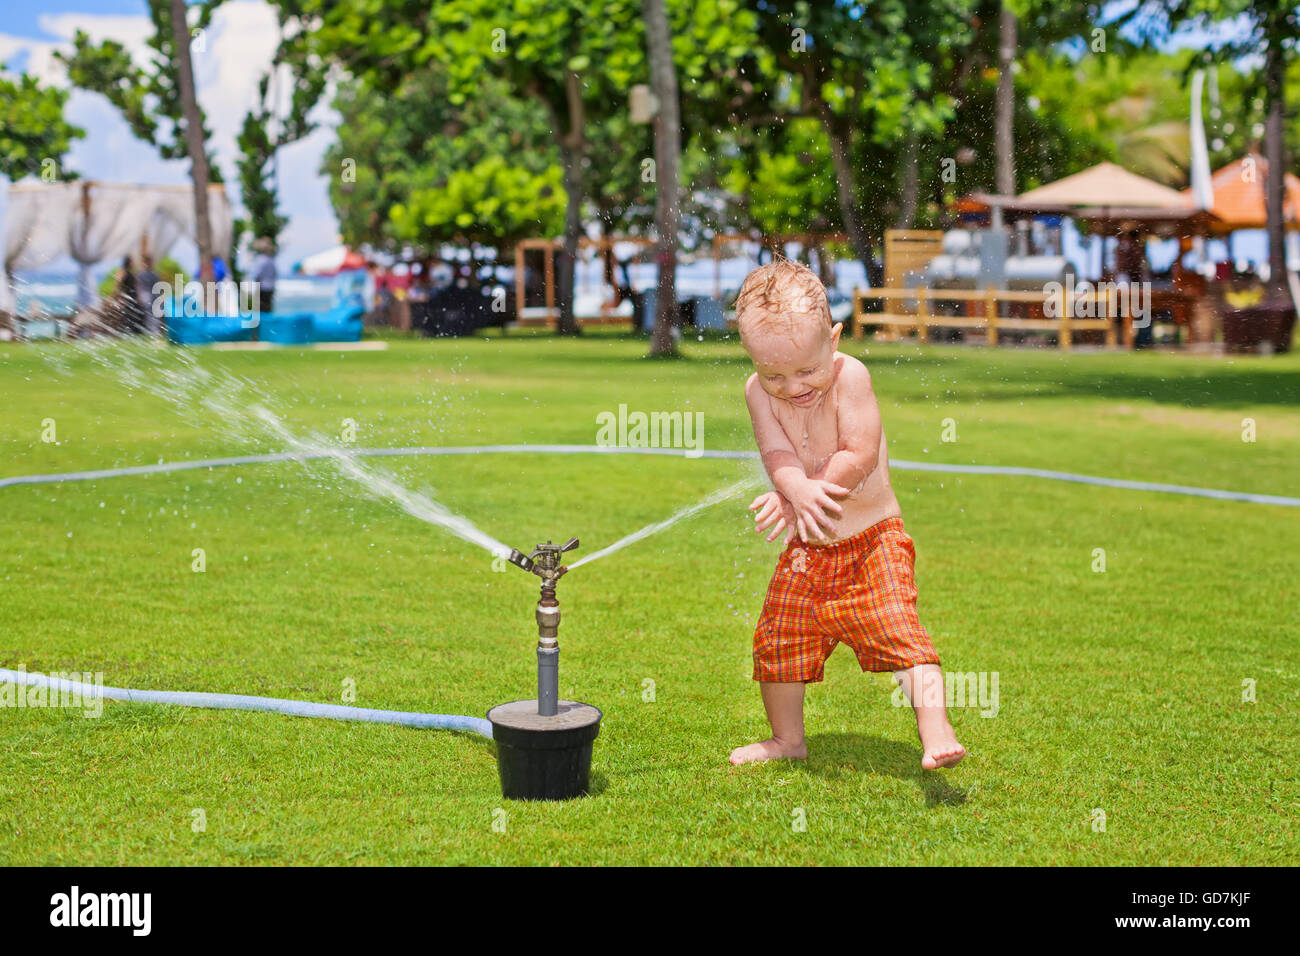 Happy baby boy playing with sprinkler spray and splashing with fun under water drops on beach club green grass lawn. - Stock Image